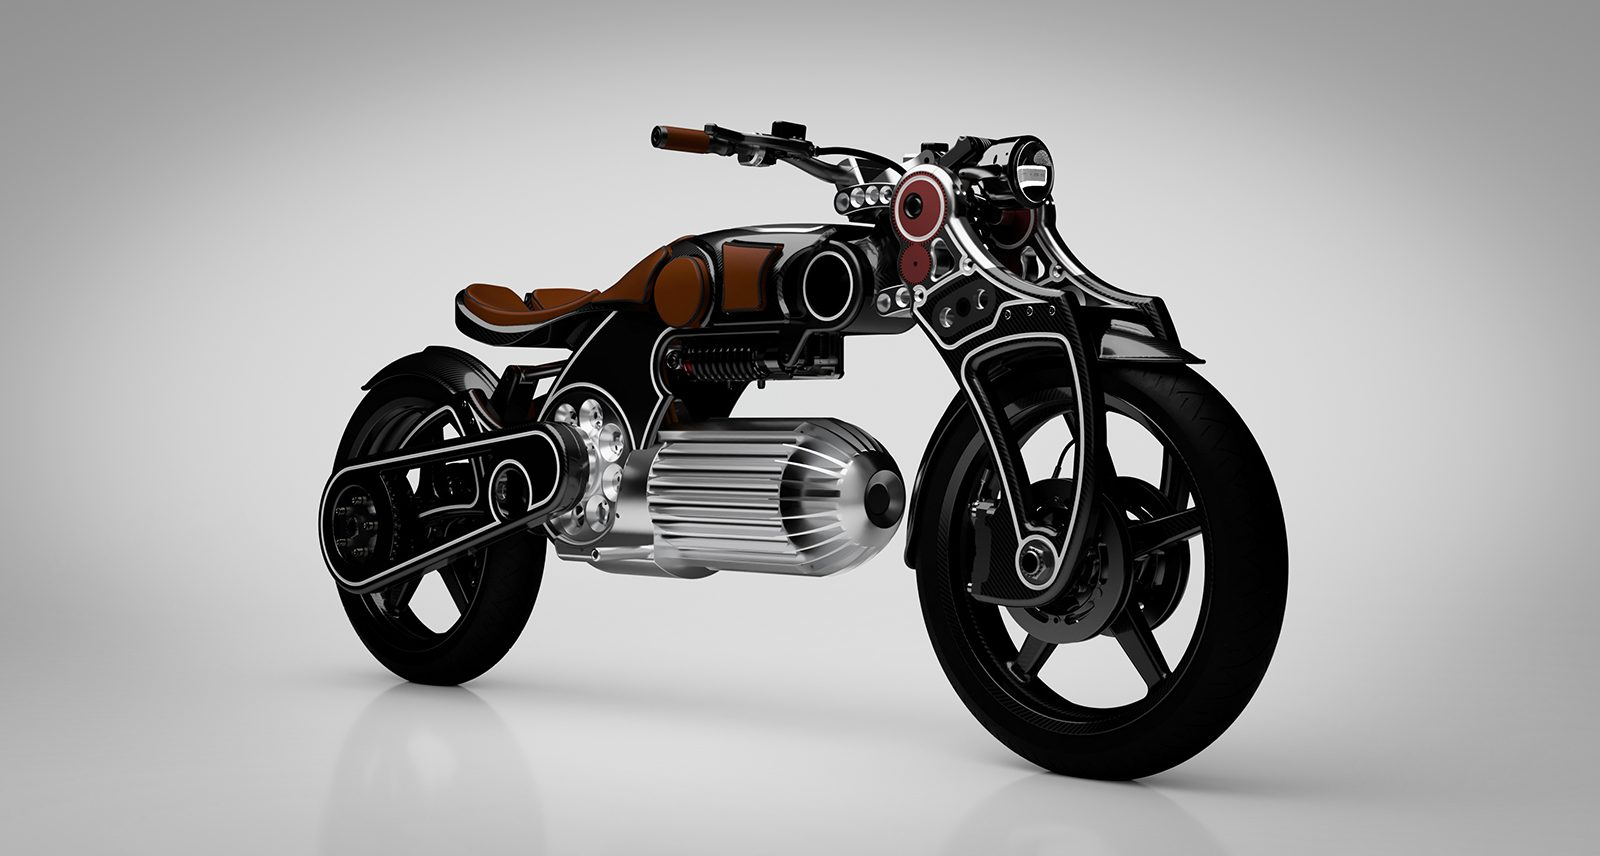 This Pistol-Shaped Curtiss Electric Motorcycle Was Inspired By Miles Davis